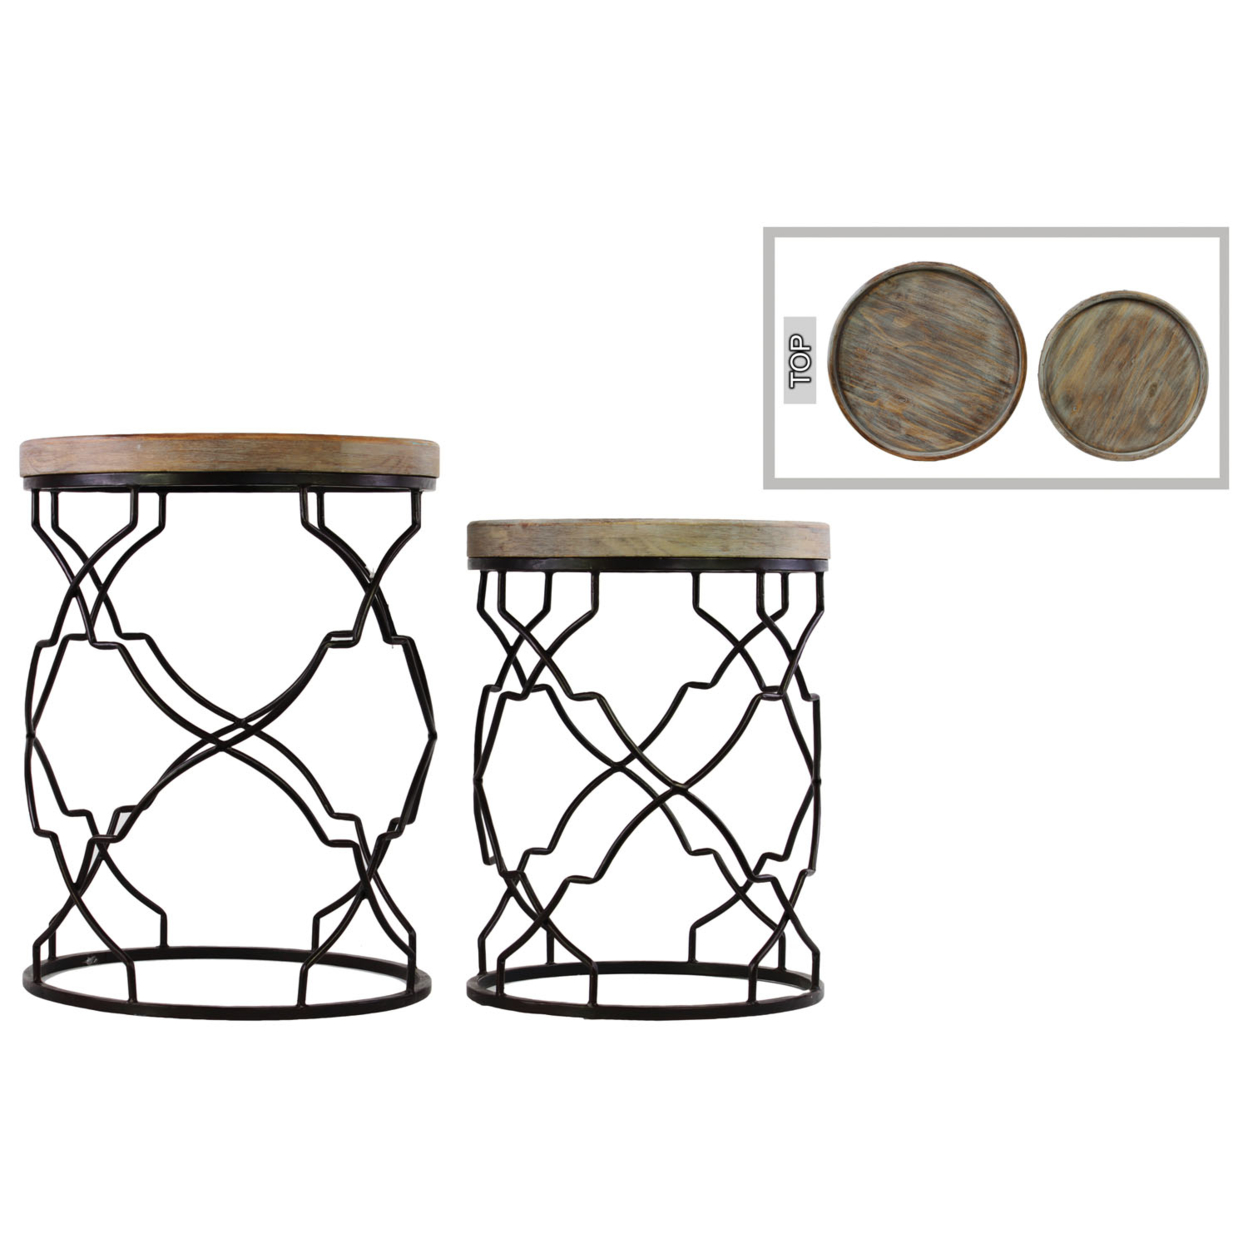 Urban Trends Metal Round Nesting Accent Table with Recessed Wood Top and Round Base Set of Two Coated Finish Black цена 2017